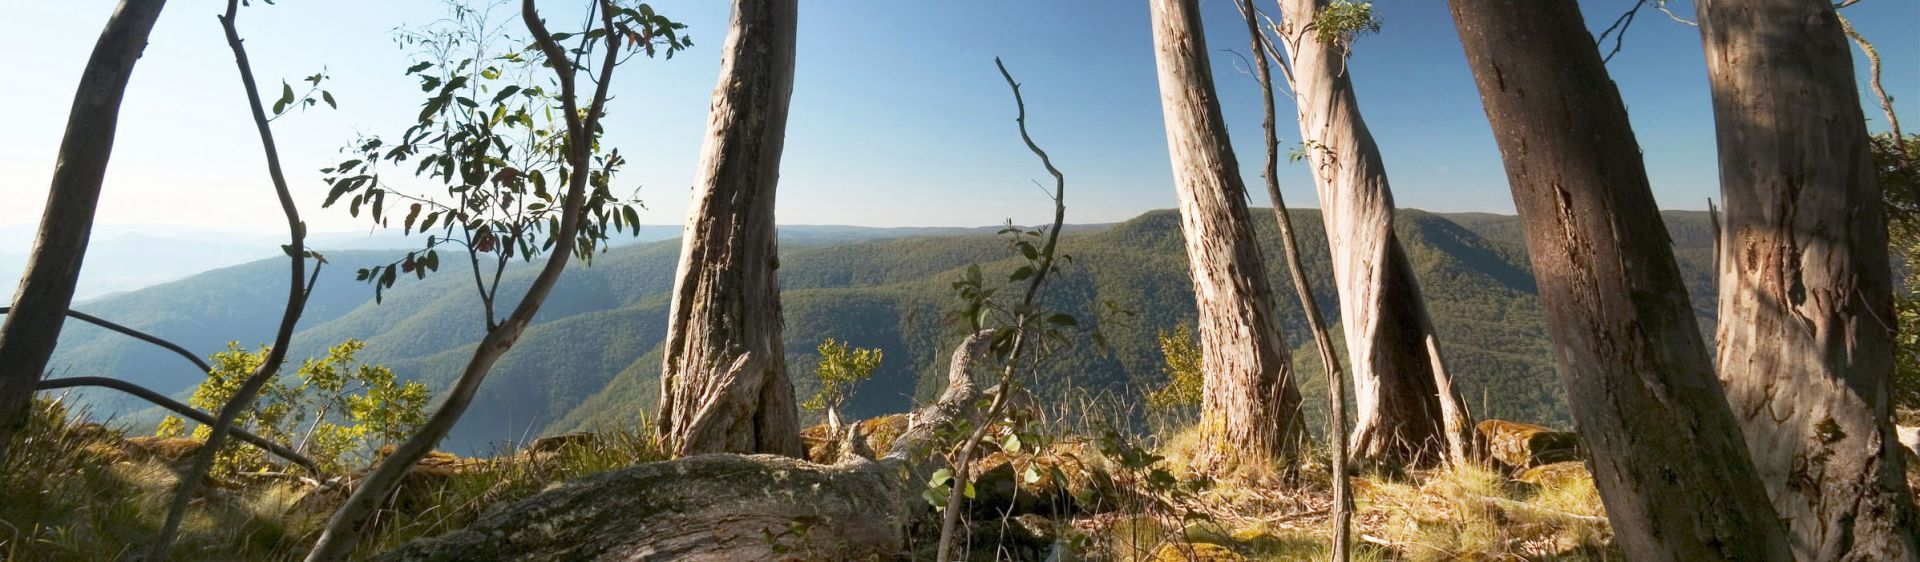 View through trees at Thunderbolts Lookout, Barrington Tops National Park, NSW, Australia